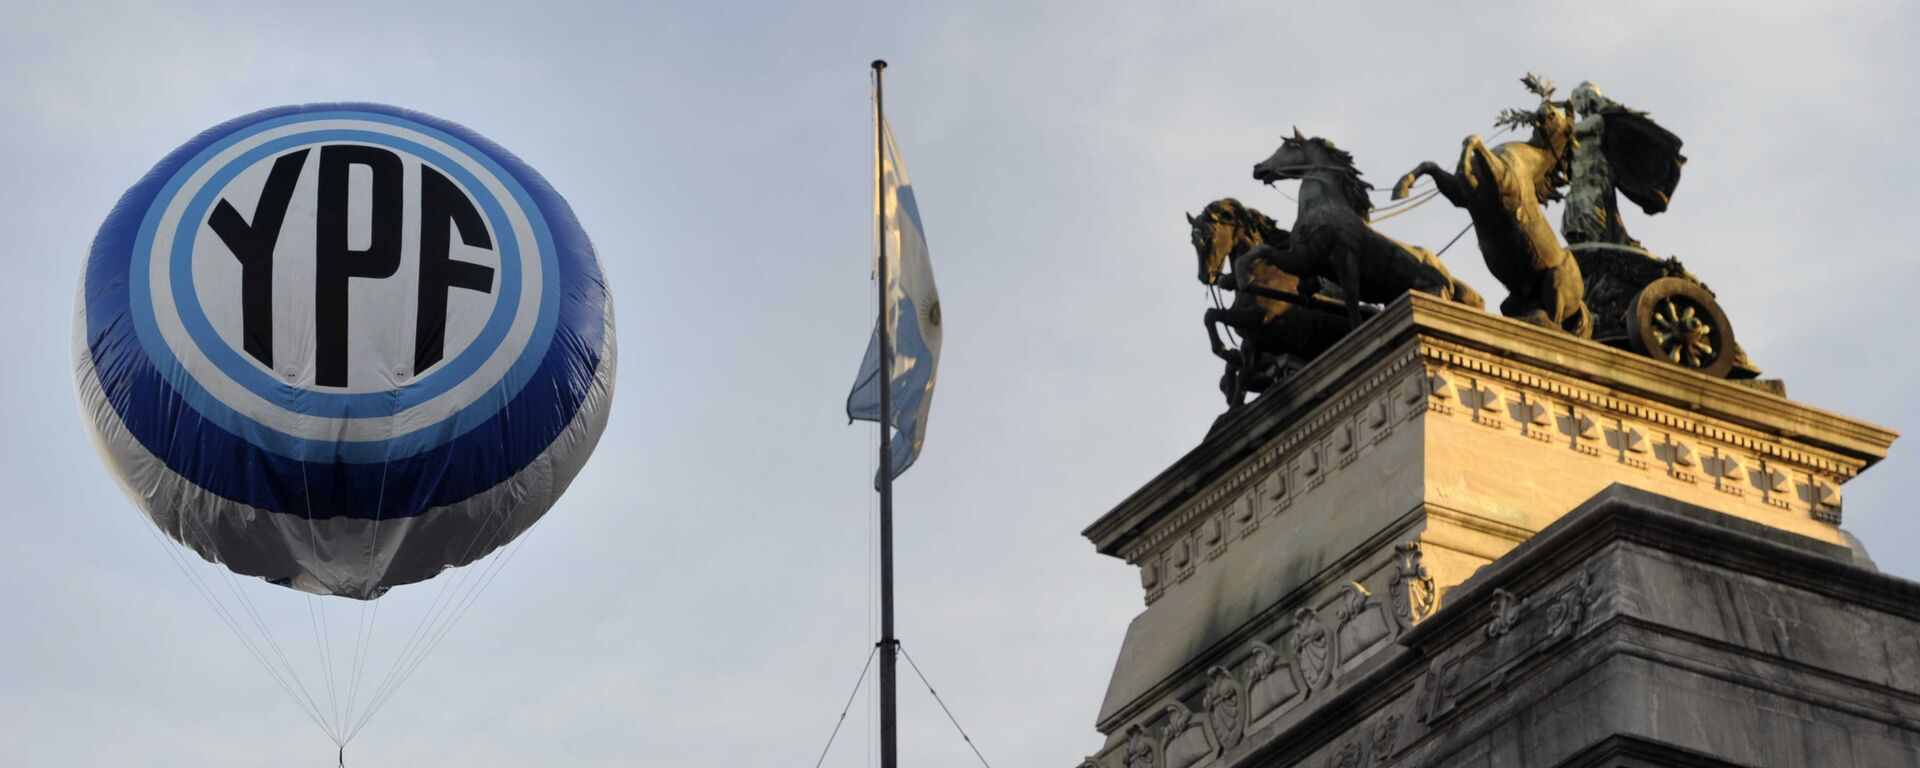 An inflatable baloon with the Argentine national oil company YPF logo floats in the air in front the Congress bulding before the voting of the bill nationalizing the company, on May 3, 2012 - Sputnik Mundo, 1920, 05.02.2021